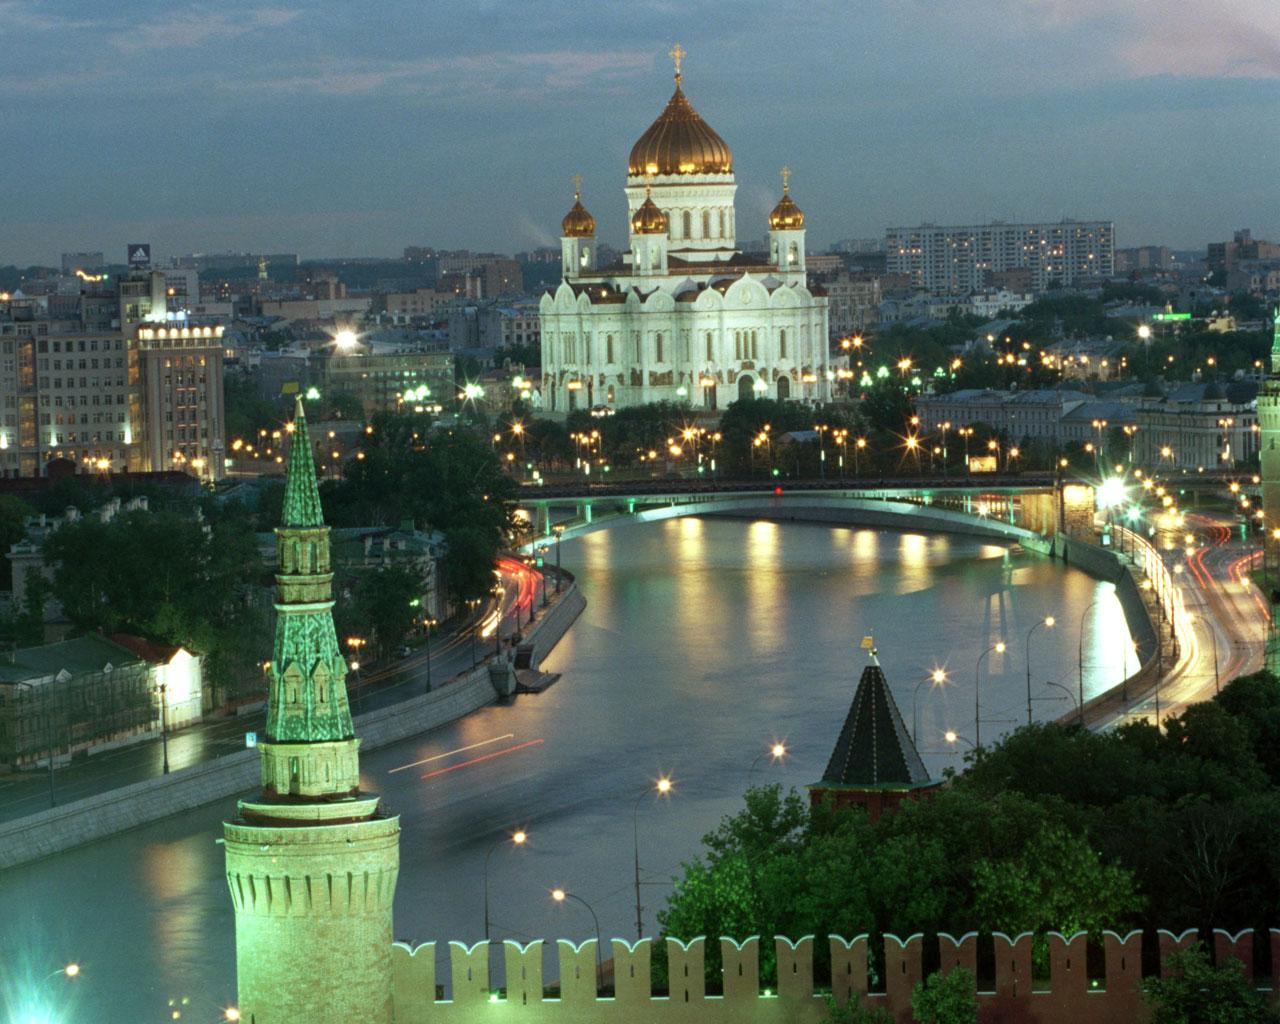 Moscow - Looking over Muskova River to the Cathedral of Christ the Saviour Wallpaper #2 1280 x 1024